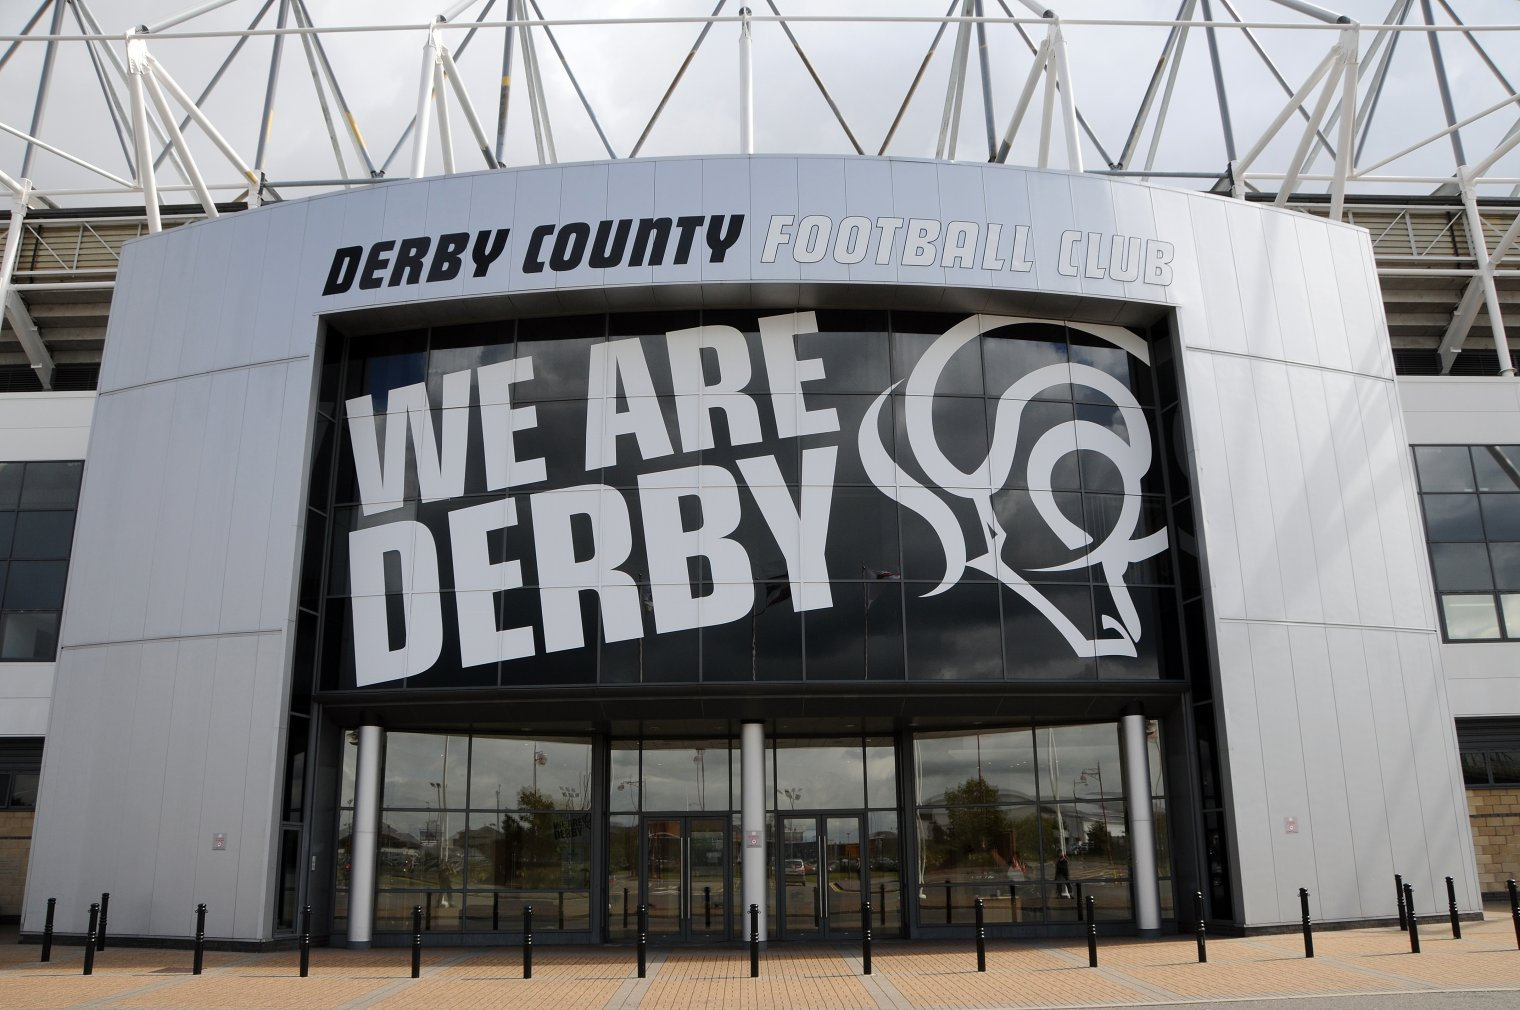 we are derby